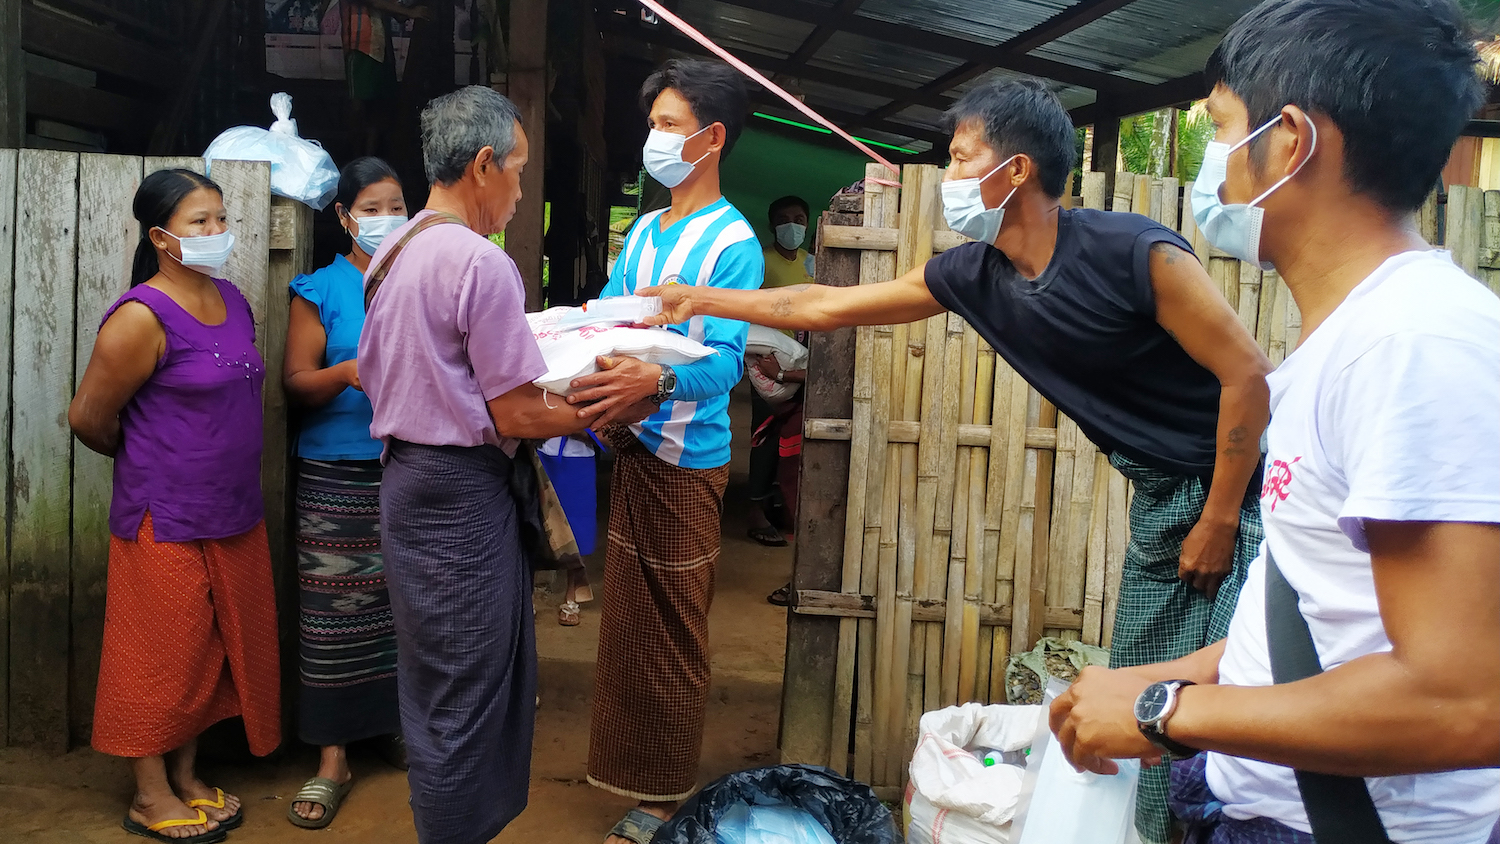 Members of the Mon Area Community Development Organization distribute bags of rice and health and hygiene items in Gani IDP site in eastern Ye township, Mon State, in early May. (Supplied | HURFOM)